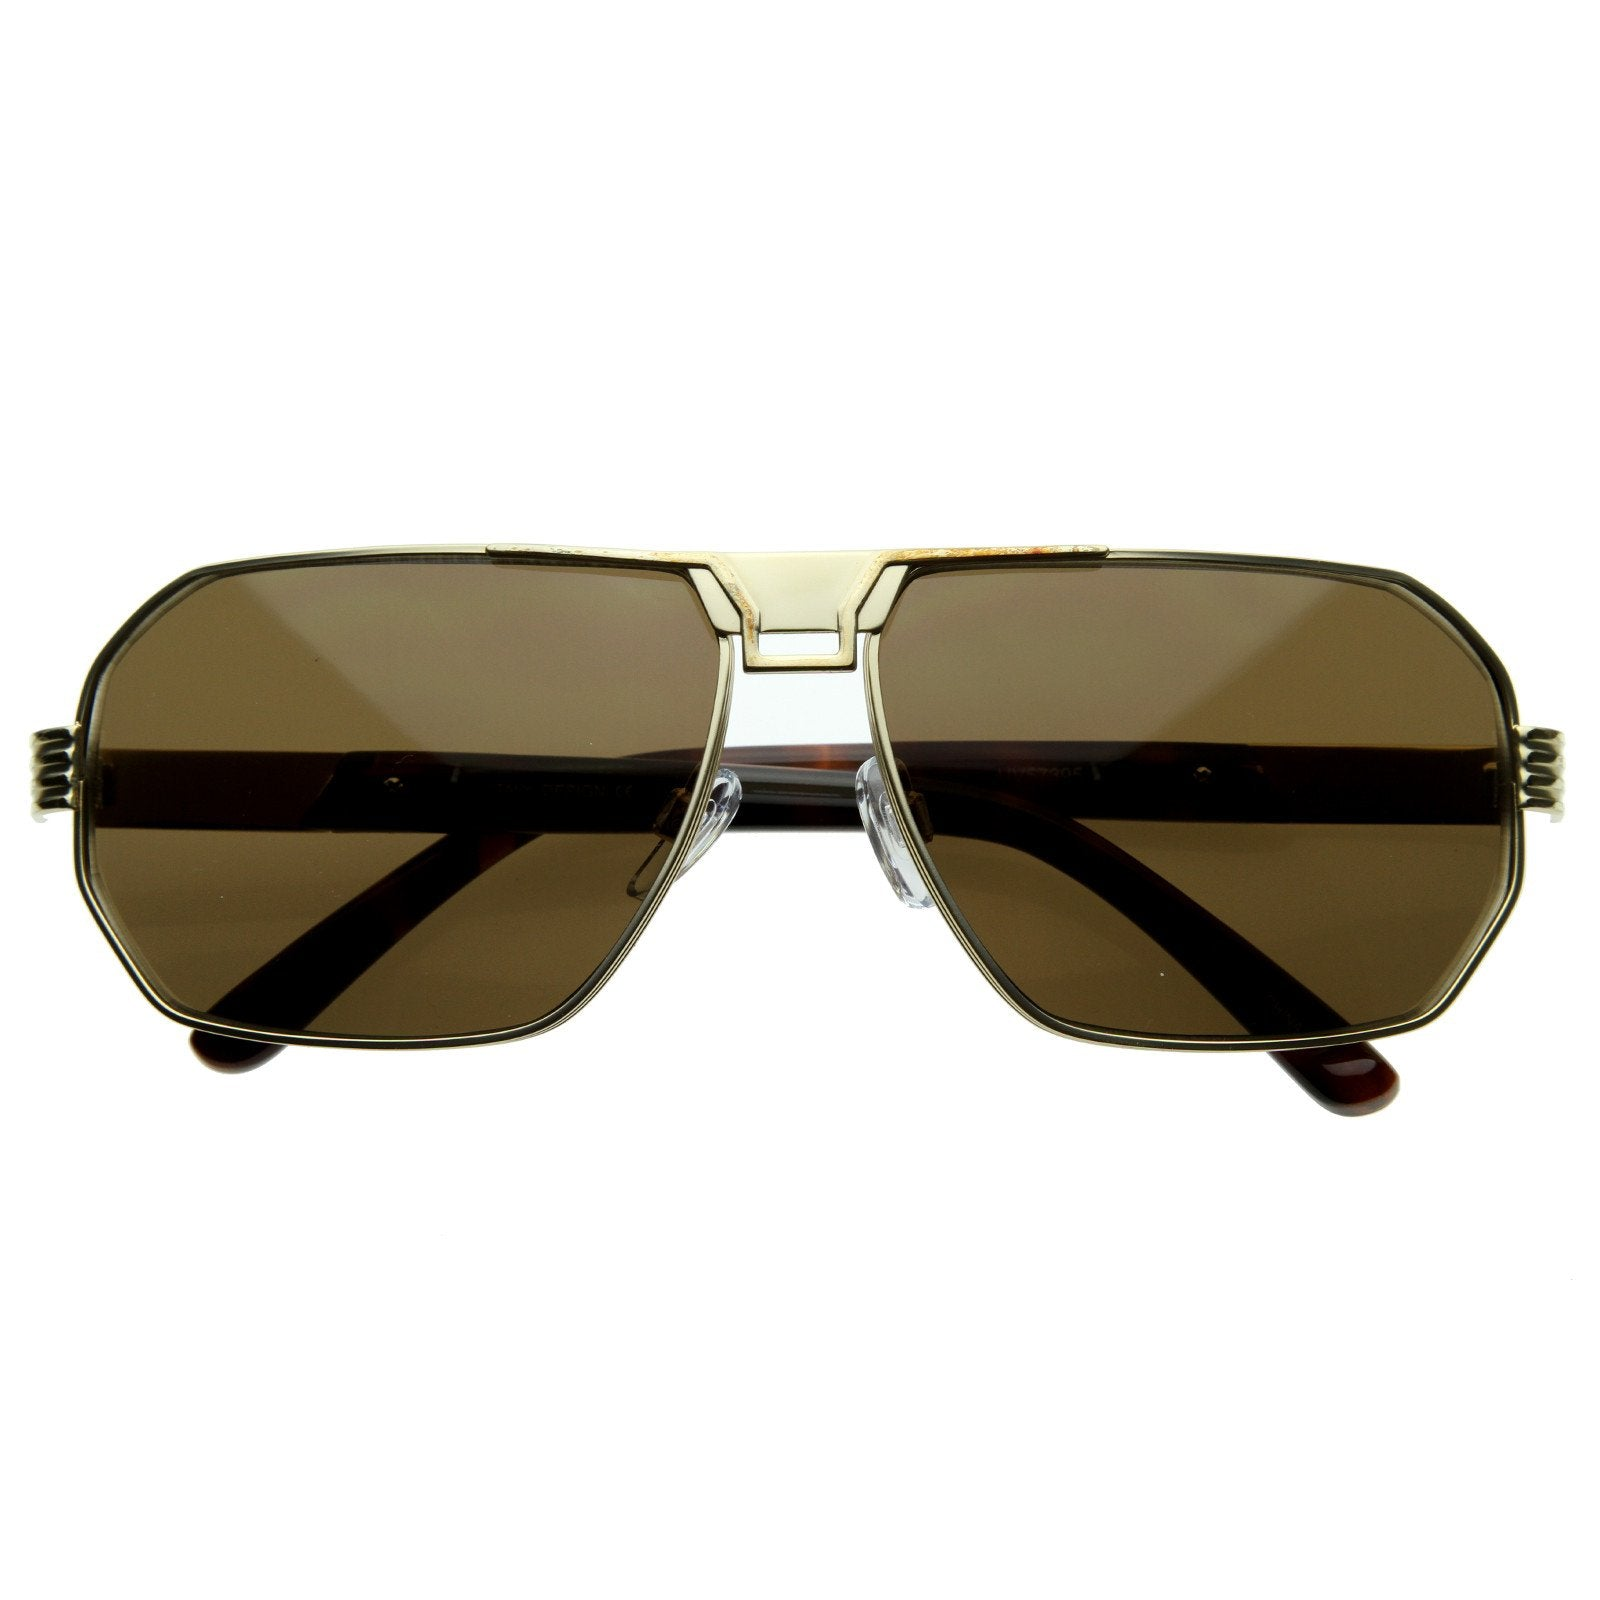 ddec01e180 Mens Optical Quality Premium Square Metal Aviator Sunglasses 8364